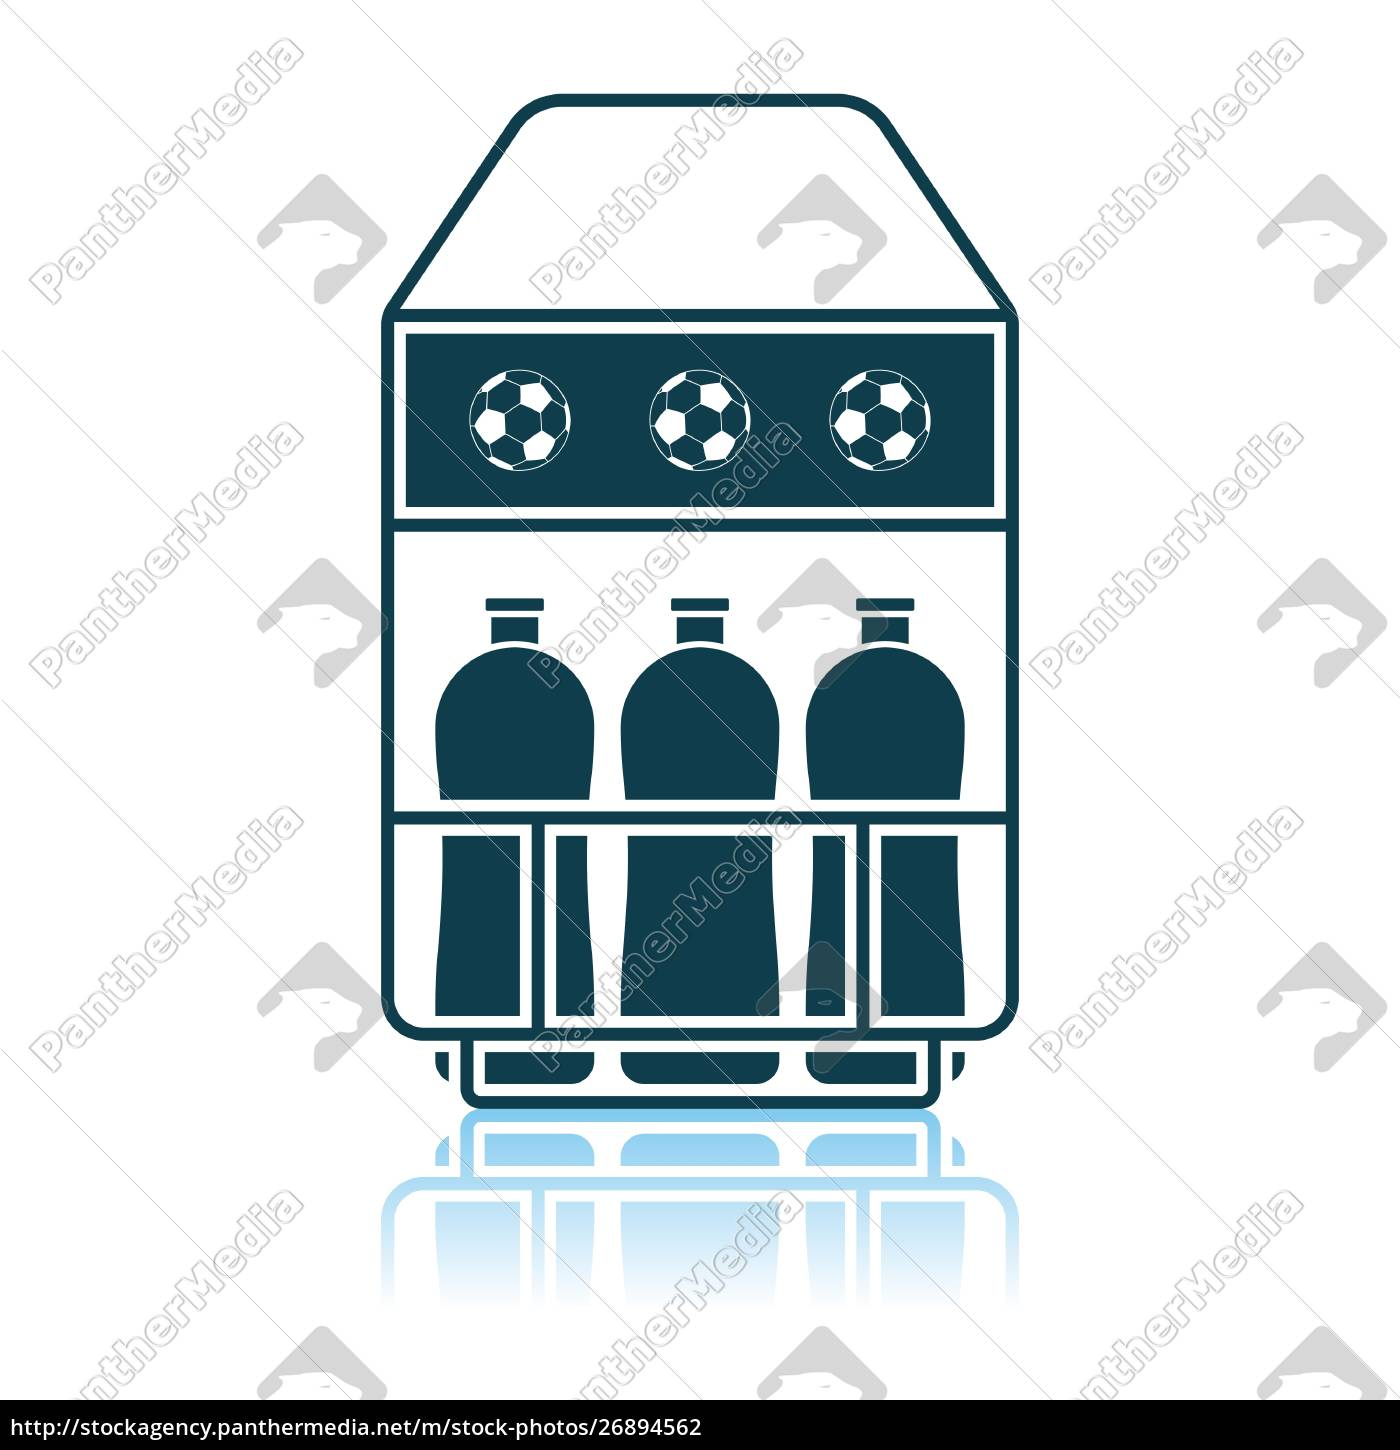 fussball, flaschencontainer, icon - 26894562